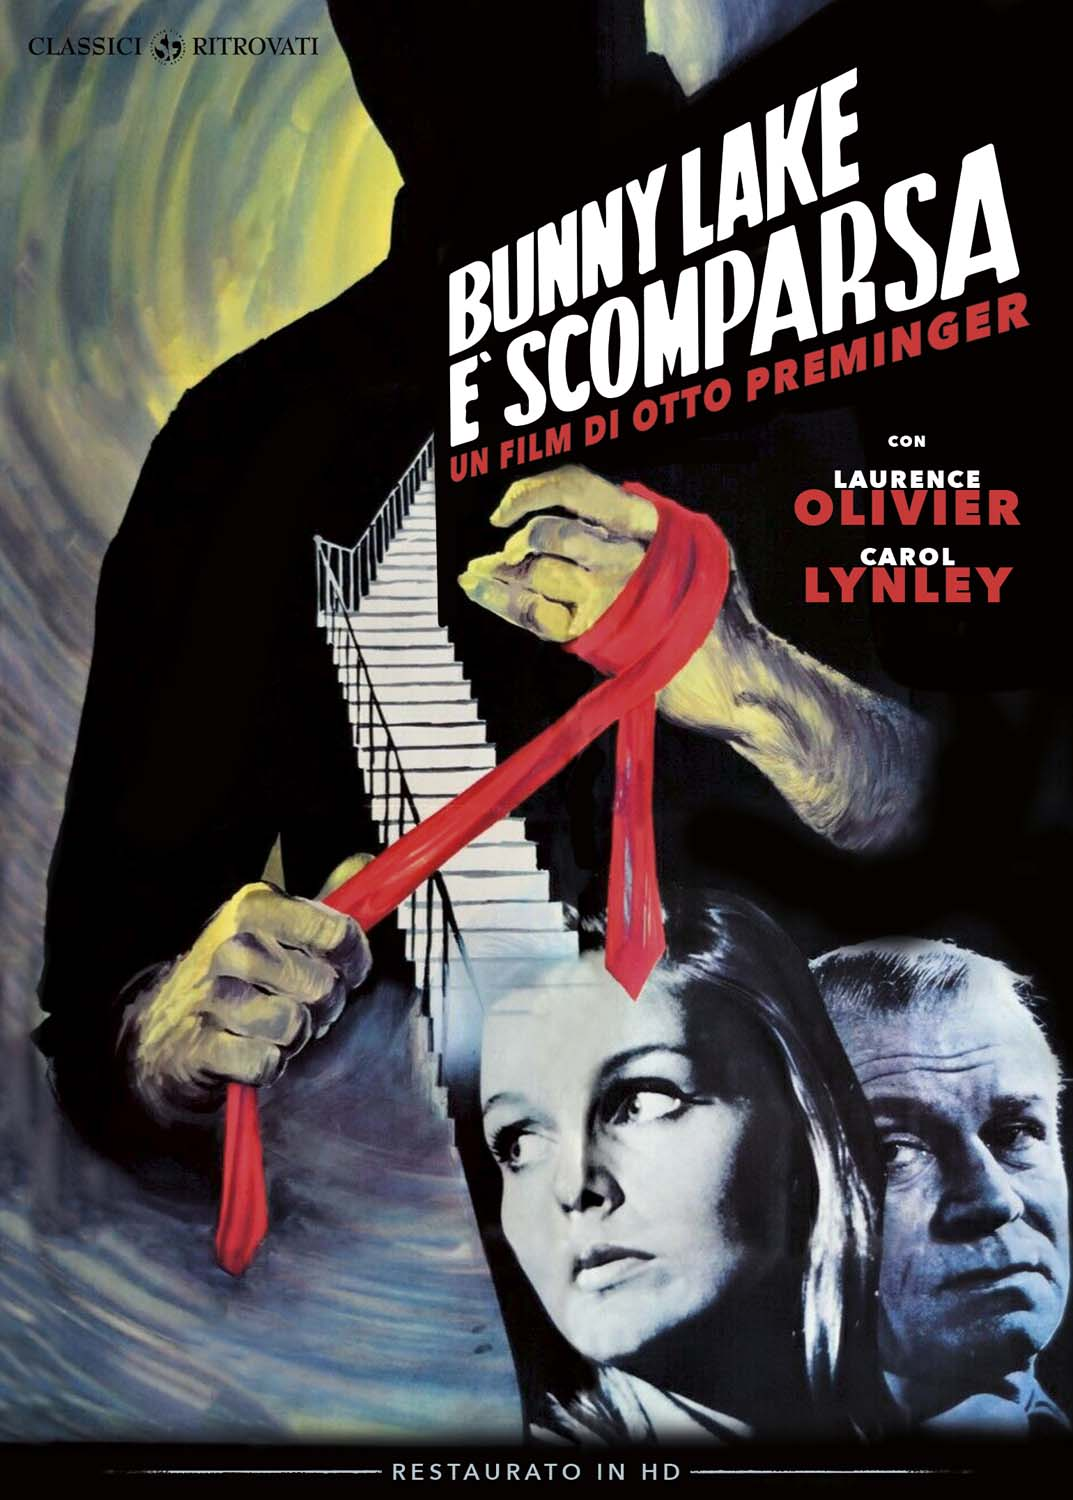 Bunny Lake � scomparsa (1965)